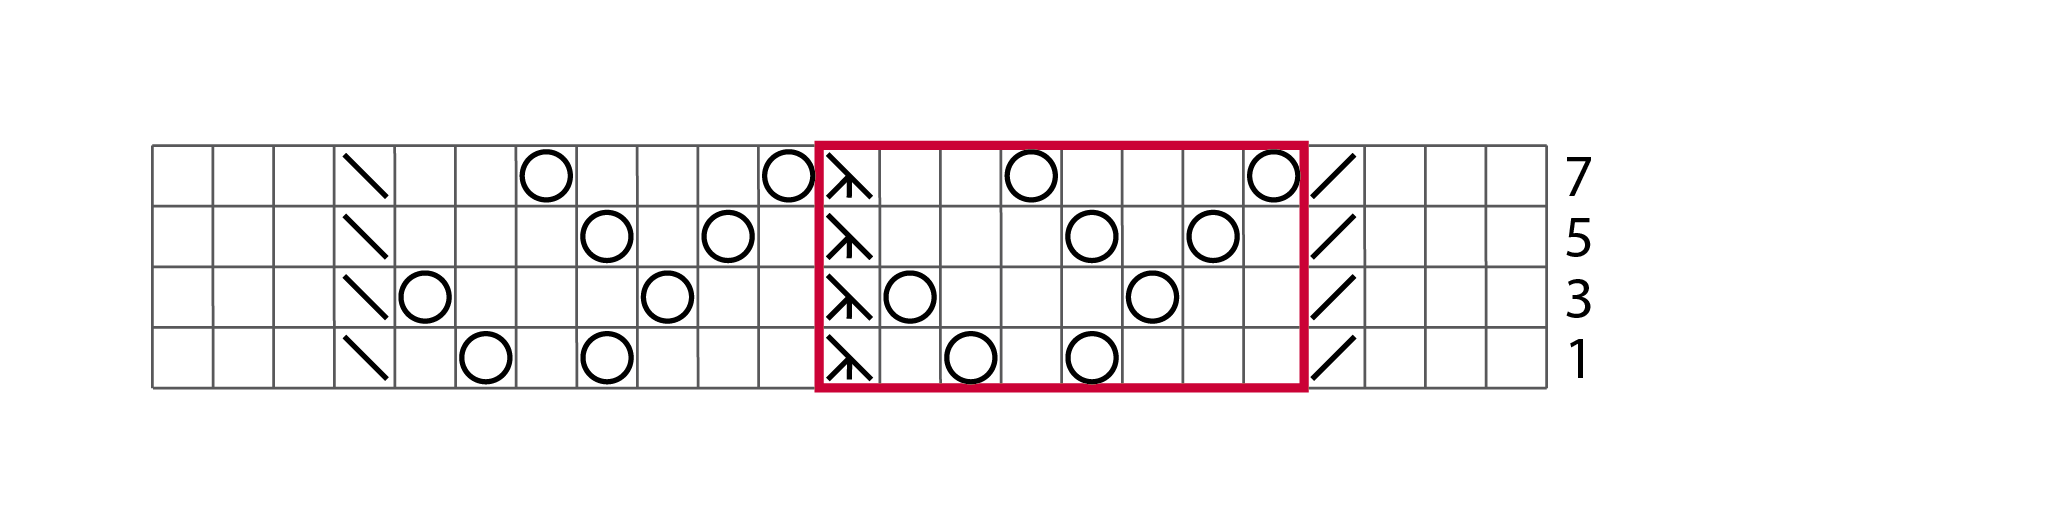 This chart shows right side rows only, with wrong side rows omitted.